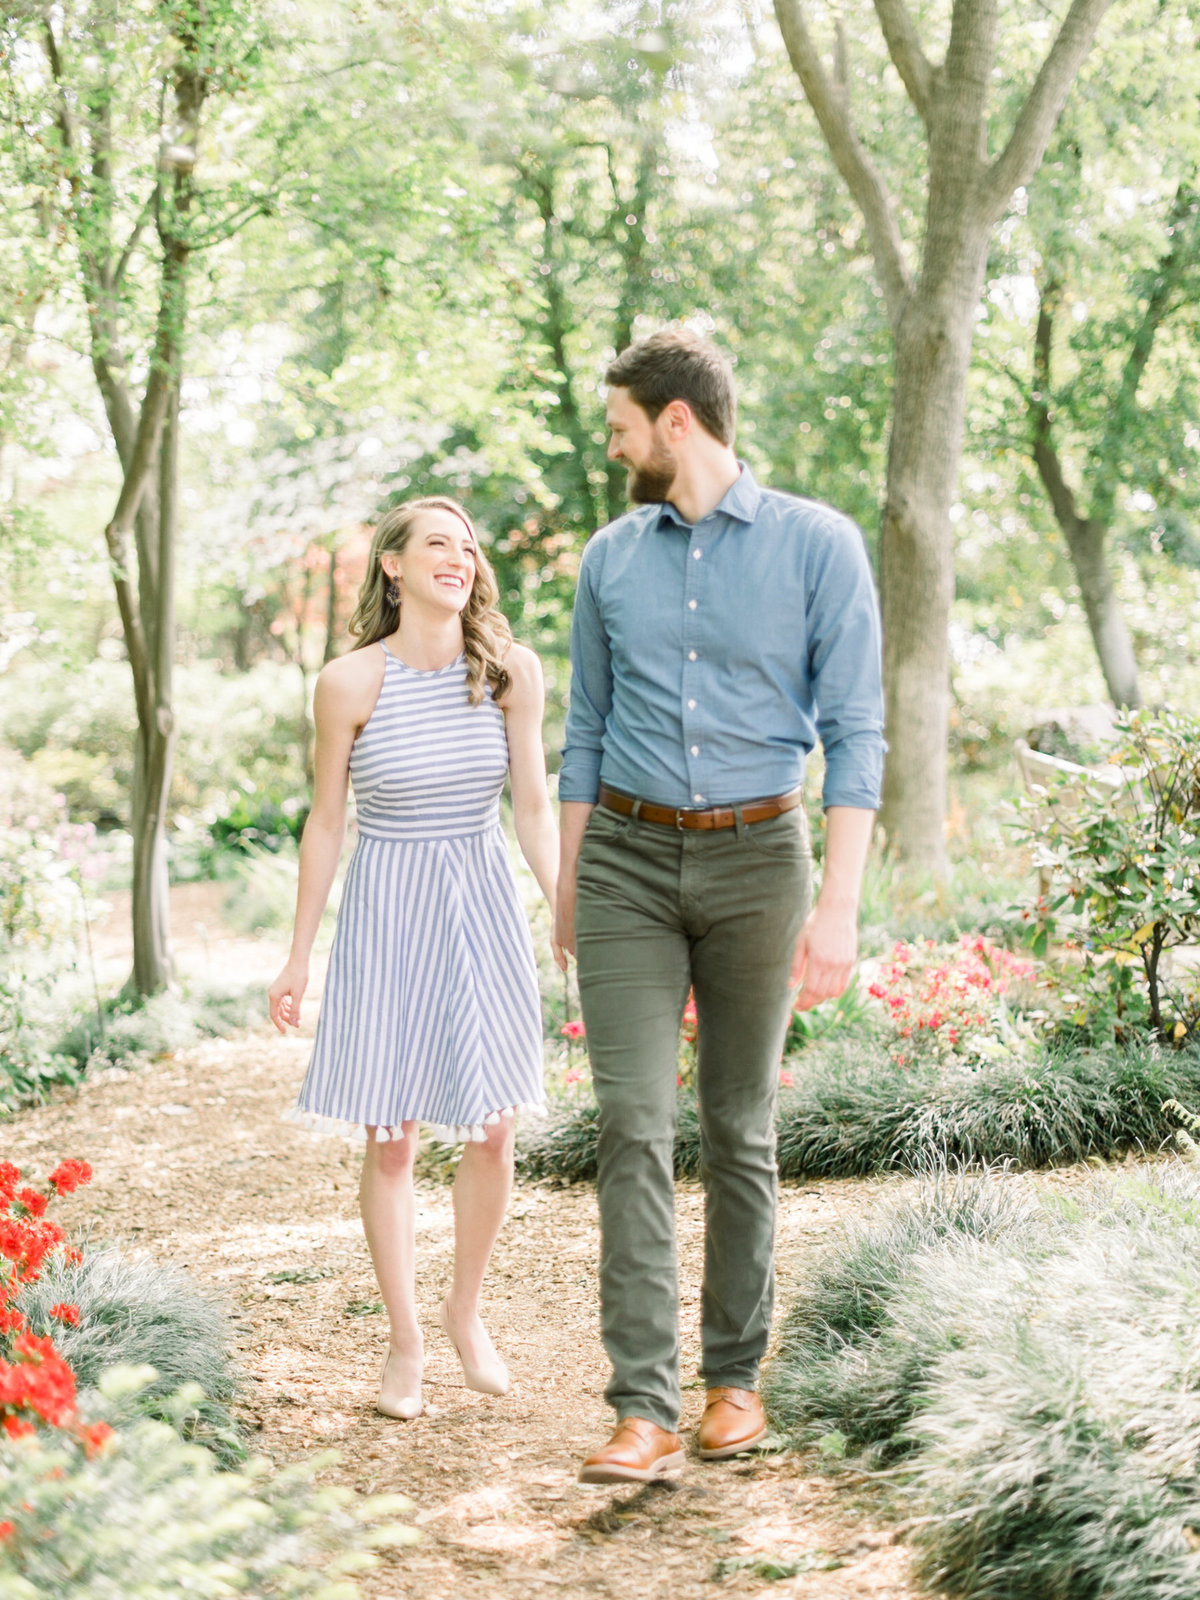 Courtney Hanson Photography - Dallas Spring Engagement Photos at Dallas Arboretum-2605